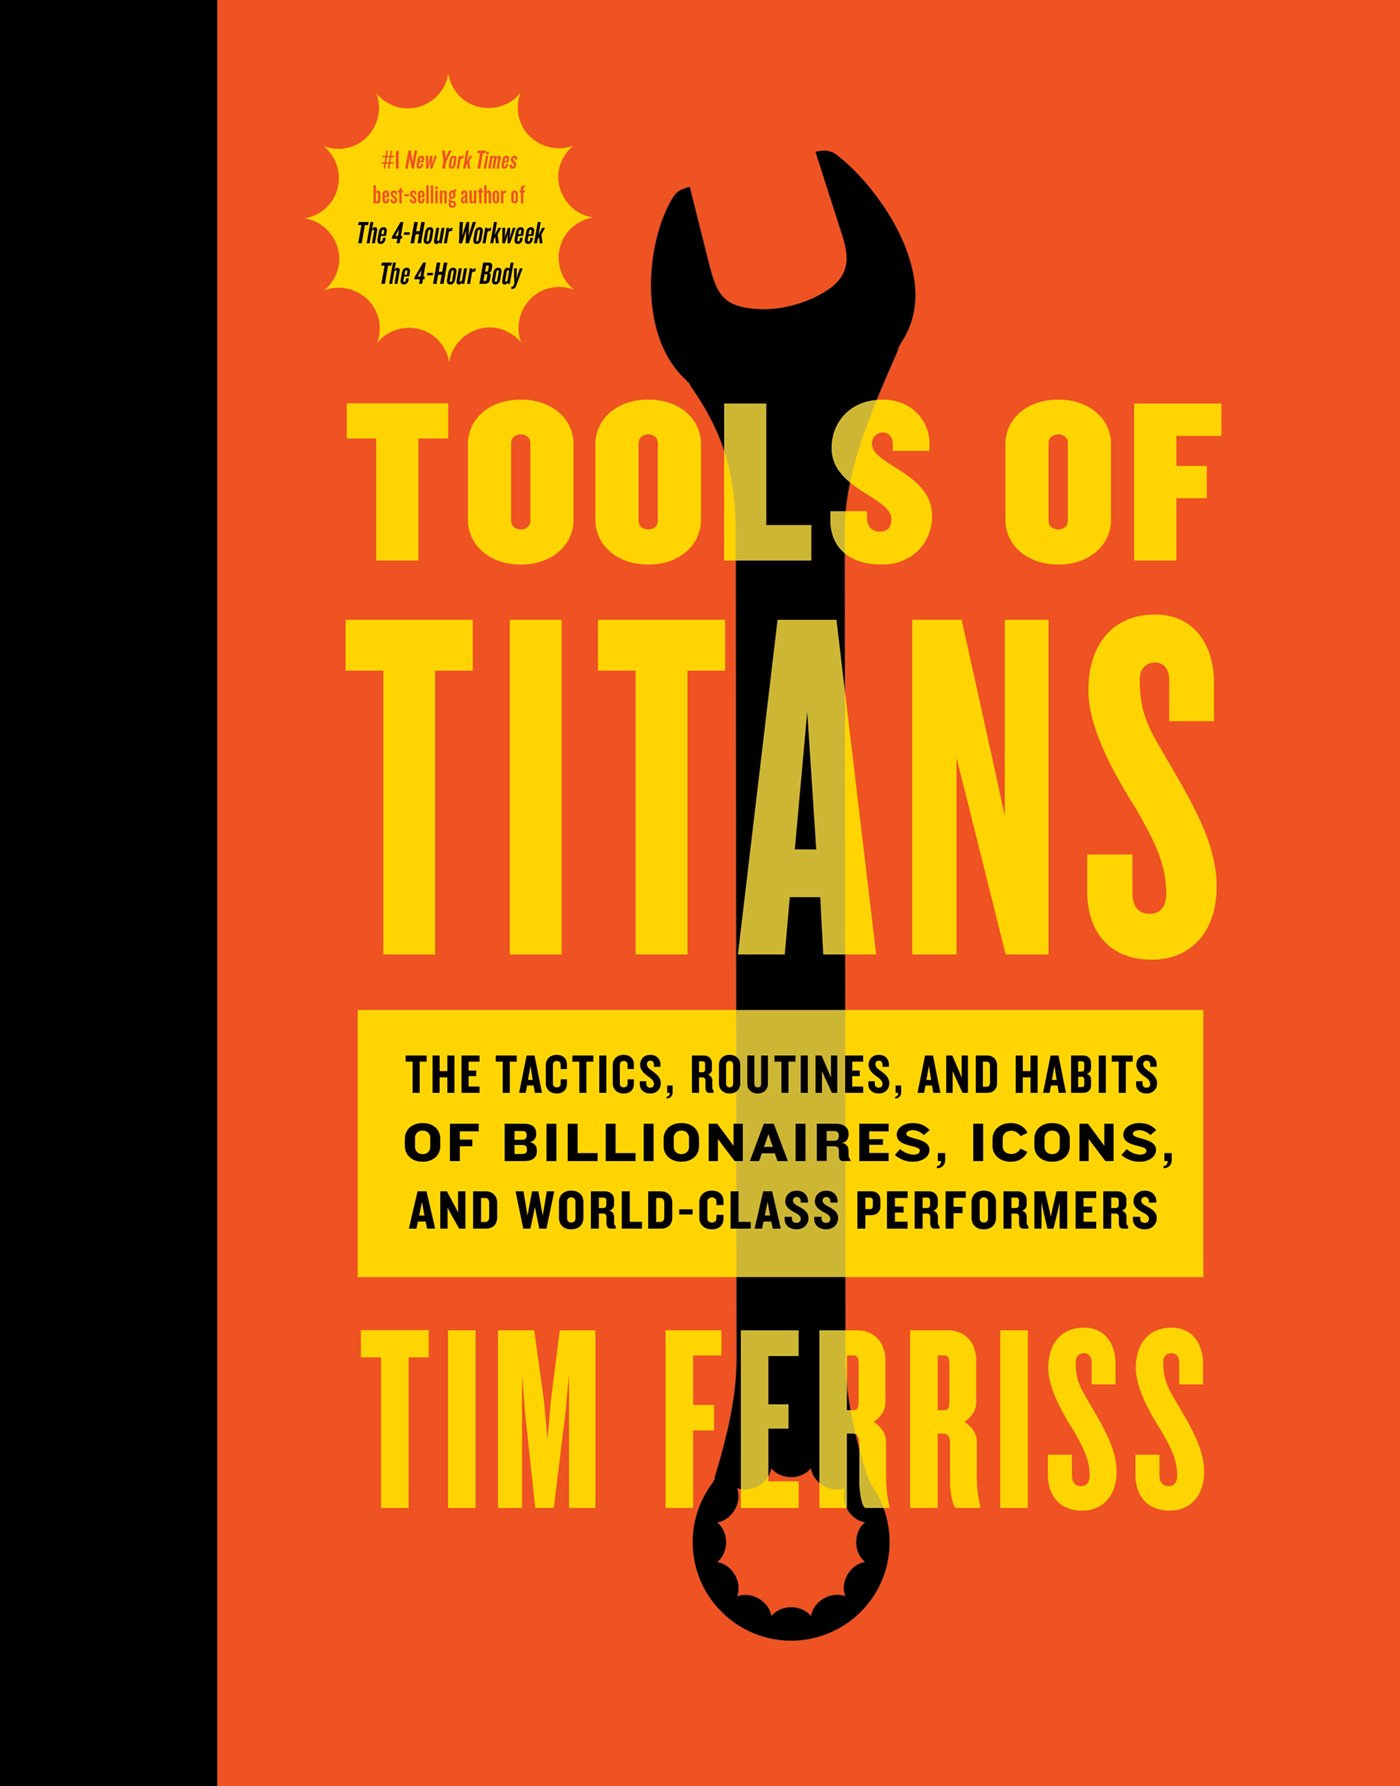 Tools of Titans: The Tactics, Routines, and Habits of Billionaires, Icons, and World-Class Performers by Houghton Mifflin Harcourt